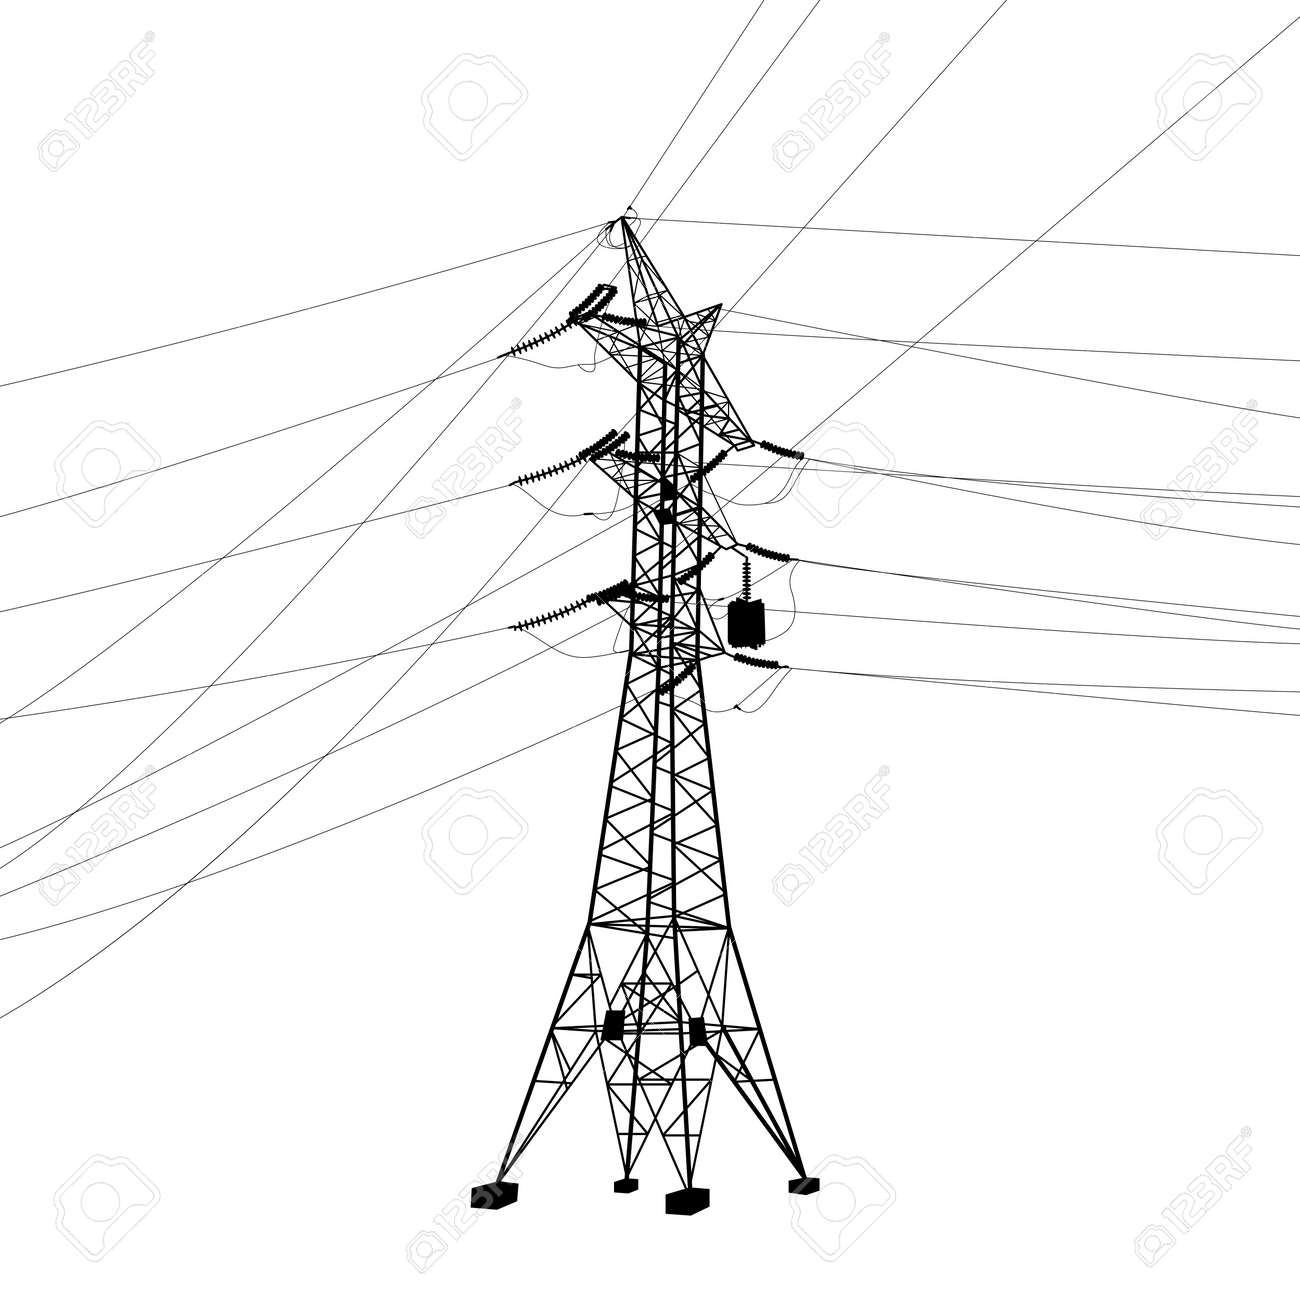 Silhouette of high voltage power lines vector illustration royalty